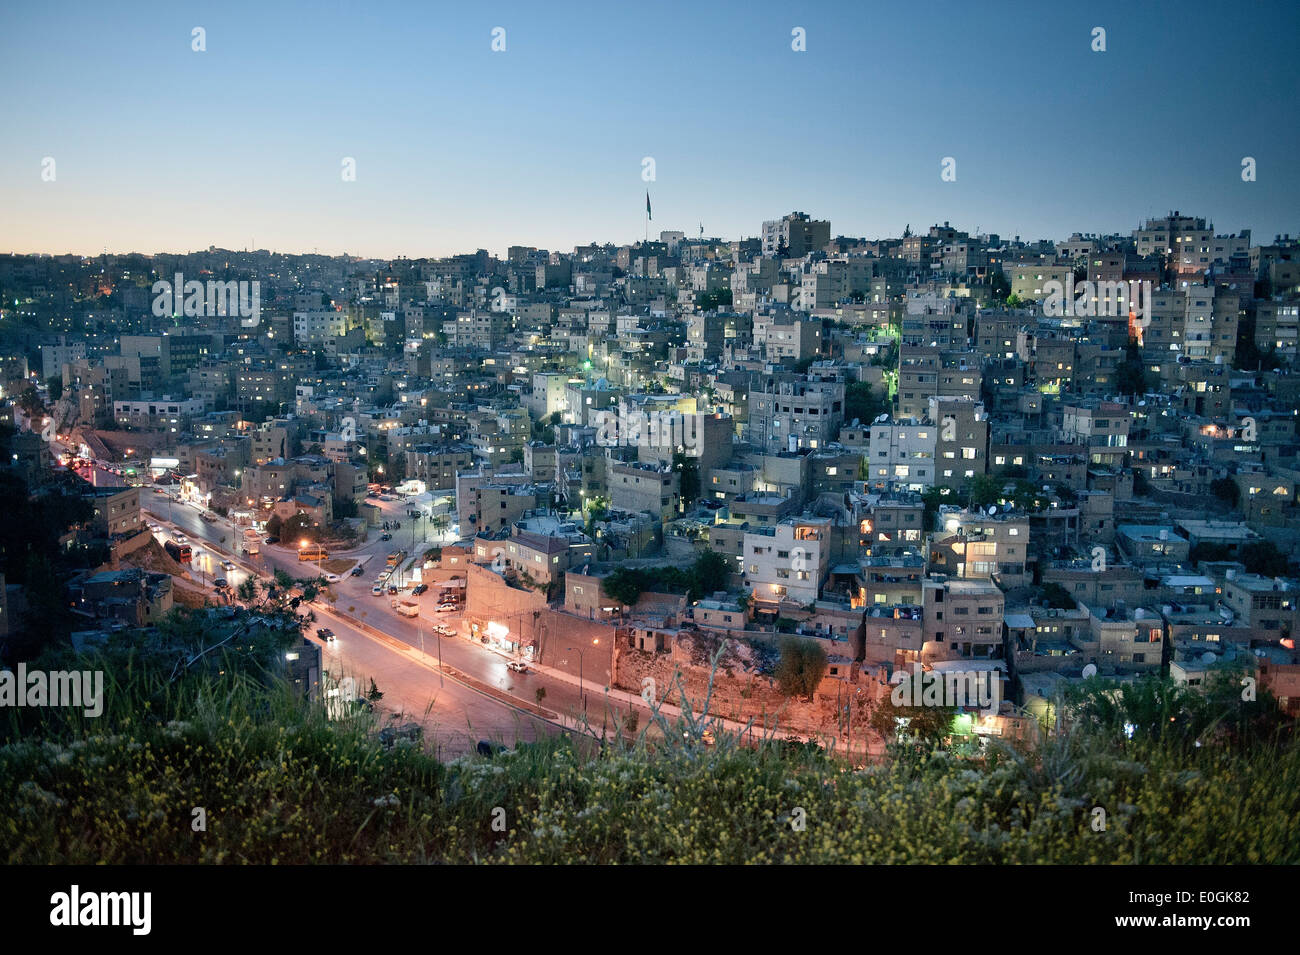 View of capital Amman at night, Jordan, Middle East, Asia - Stock Image